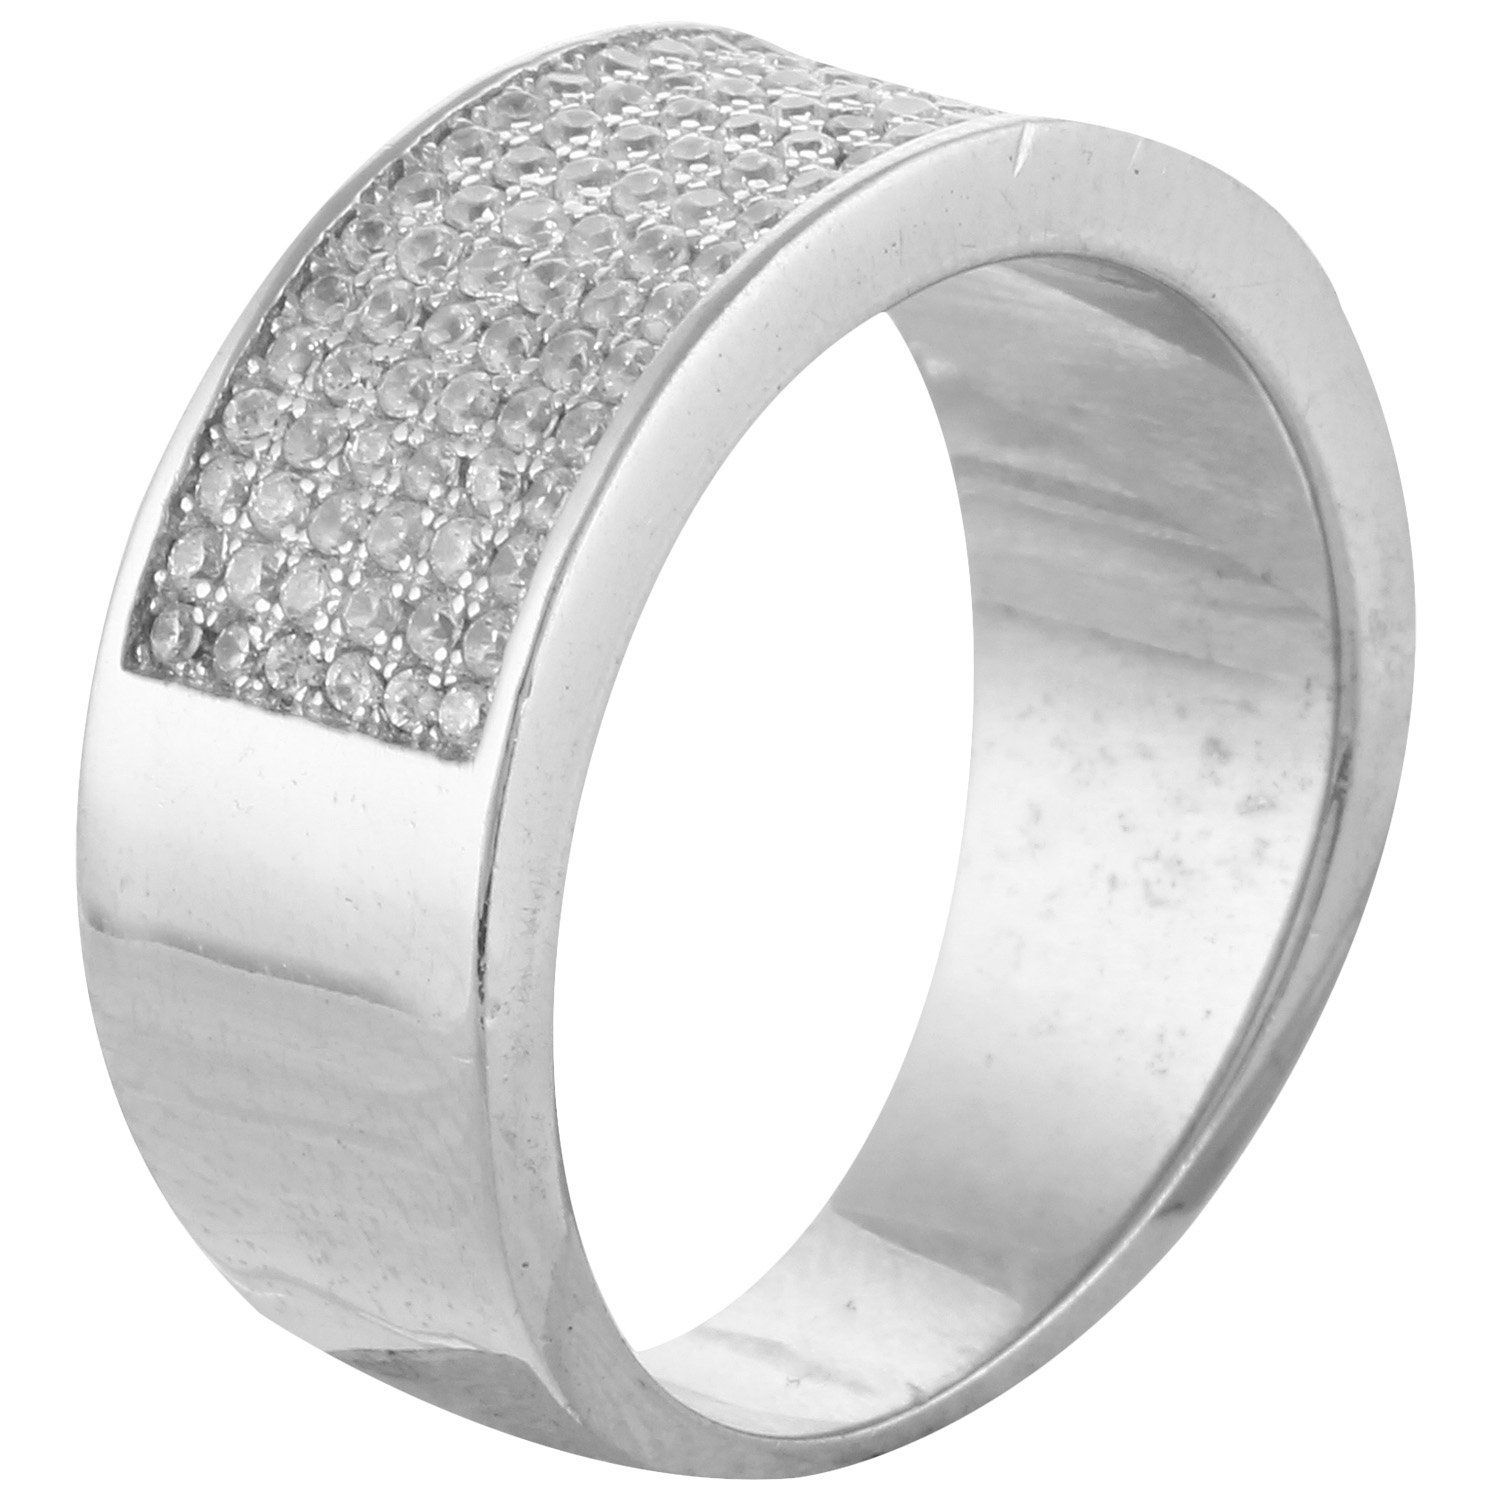 Buy Define Jewellery Silver ring for Men (DFR0046 ) Online at Low Prices in India | Amazon Jewellery Store - Amazon.in